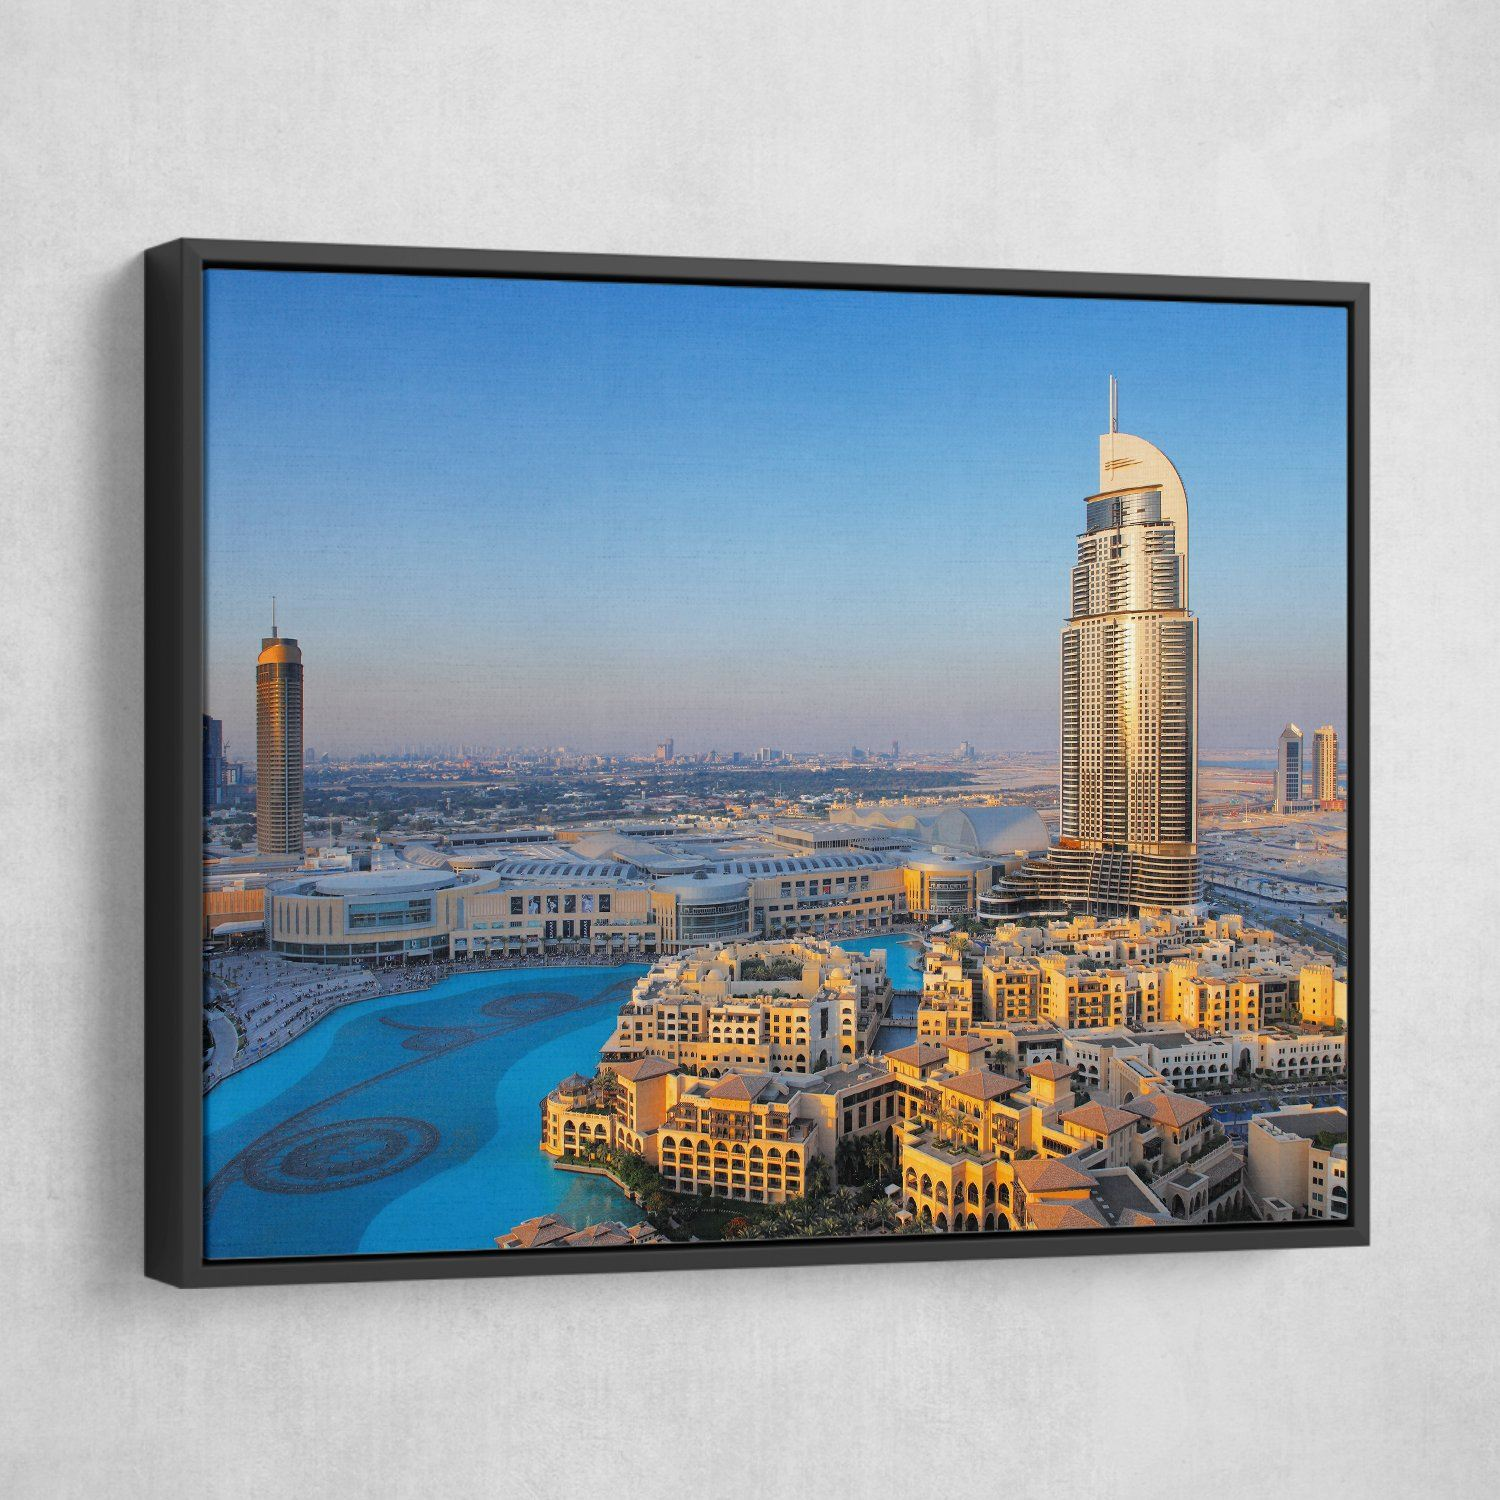 Downtown Dubai wall art black frame